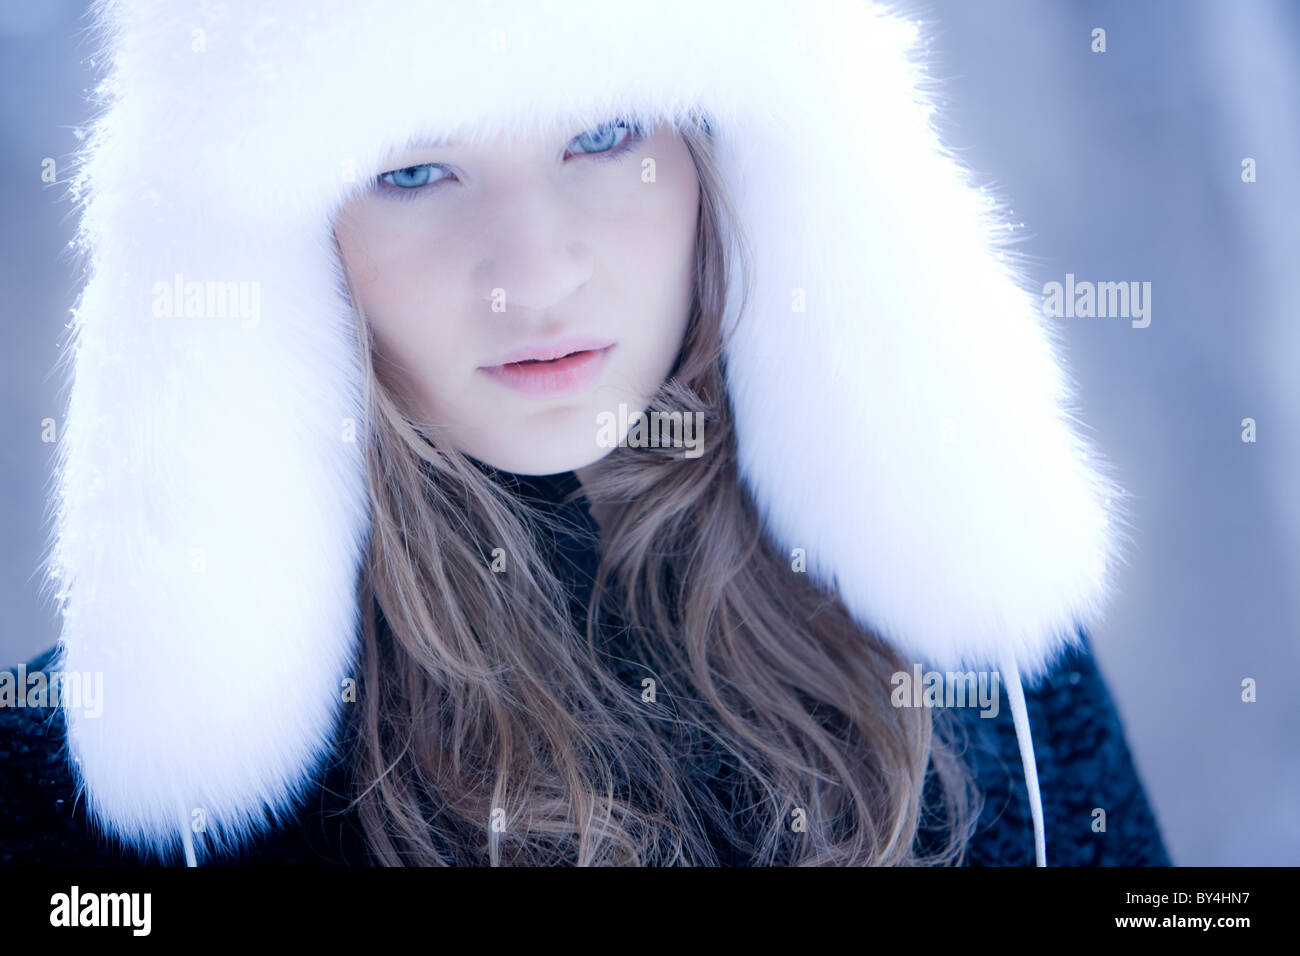 Portrait of attractive young woman wearing white fur cap looking at camera Stock Photo